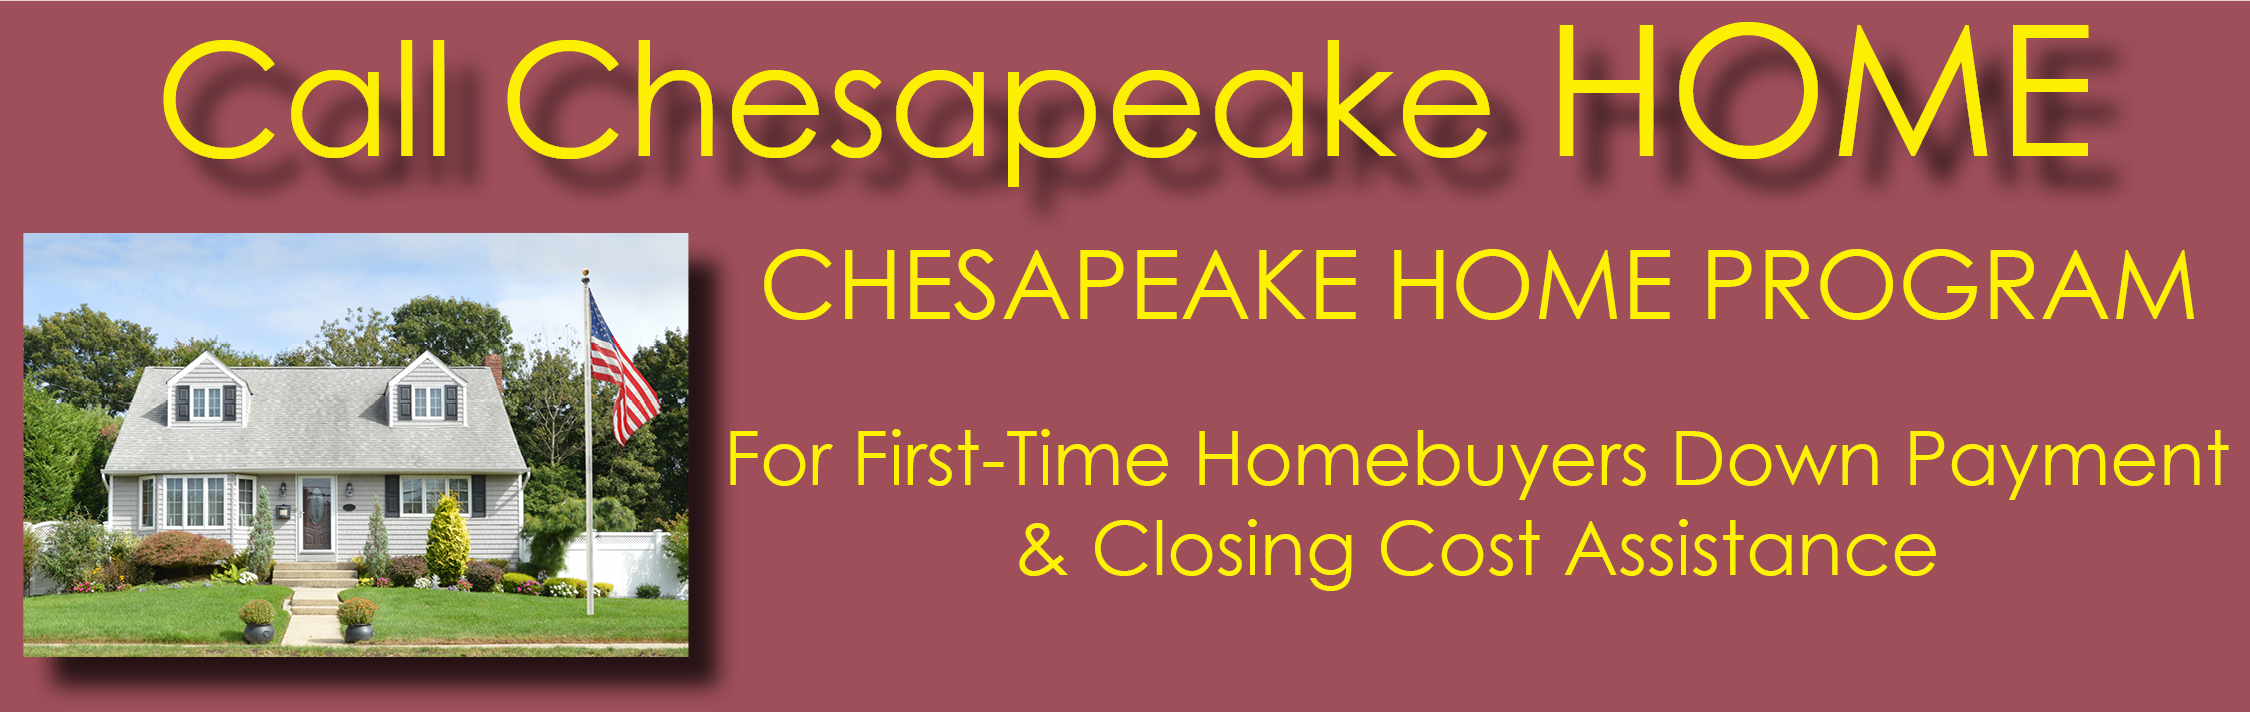 Banner for the Call Chesapeake HOME Program